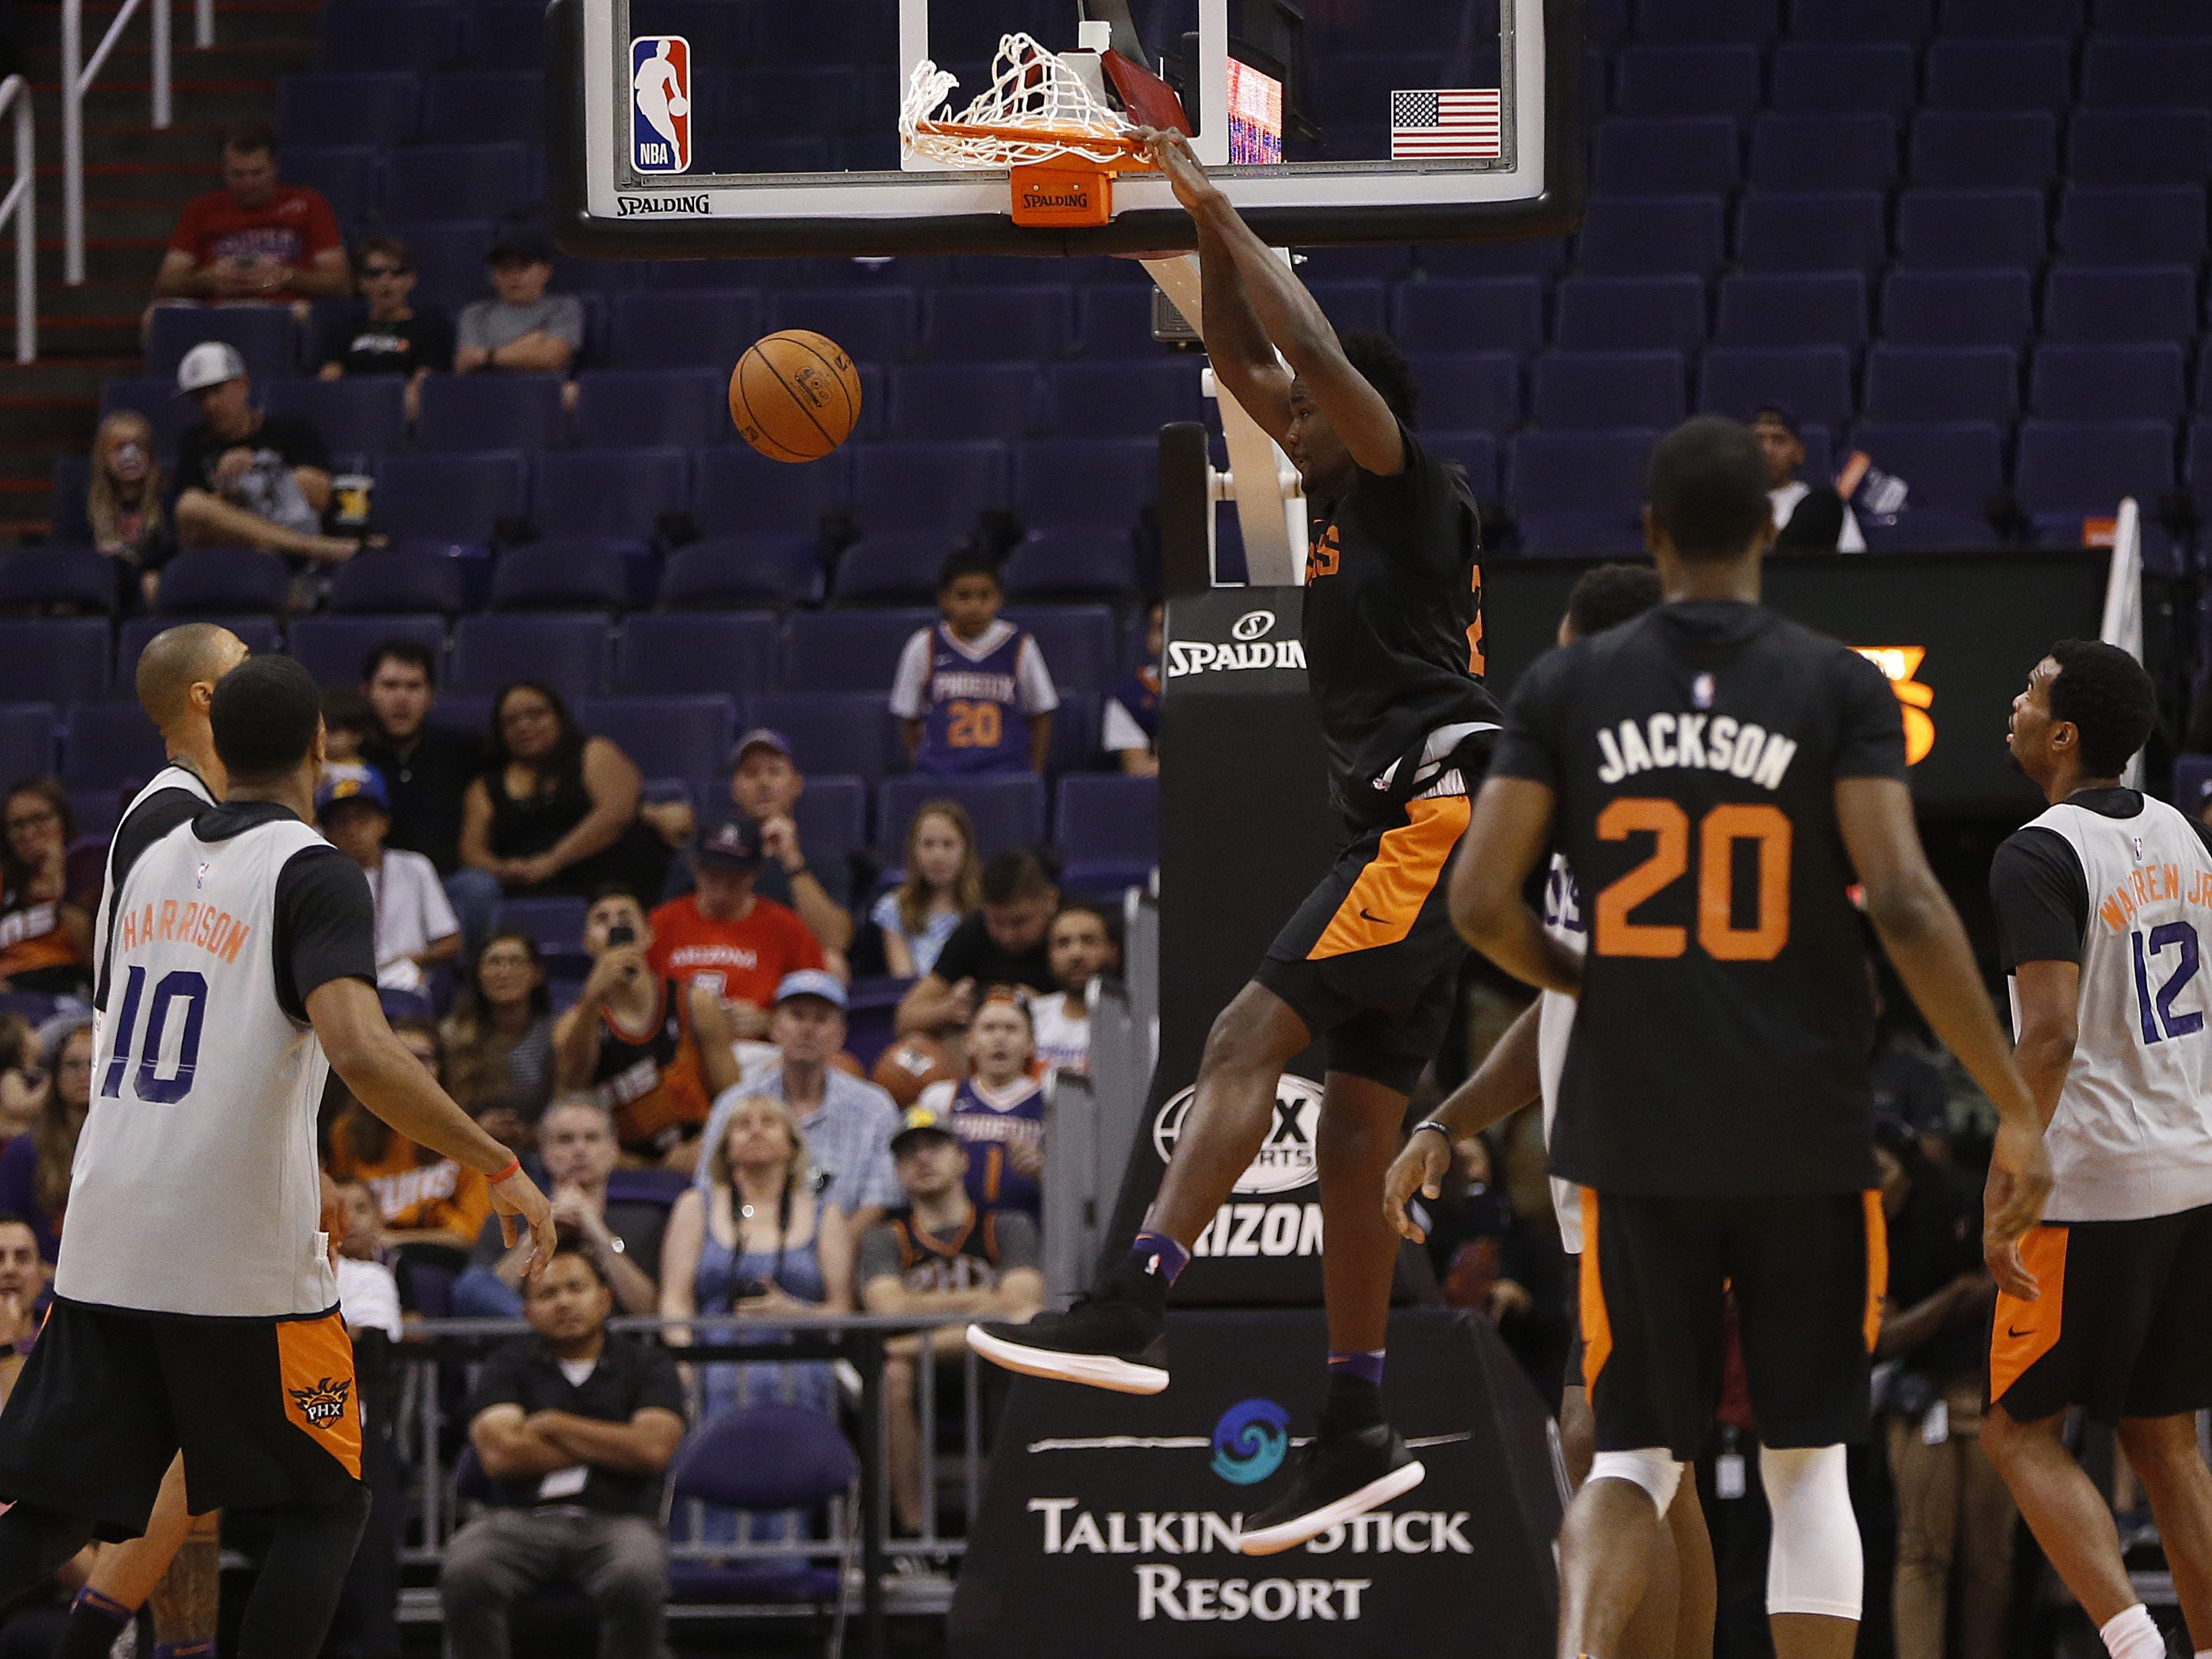 Suns Deandre Ayton dunks during an Open Practice at Talking Stick Resort Arena in Phoenix, Ariz. on Sept. 29, 2018.